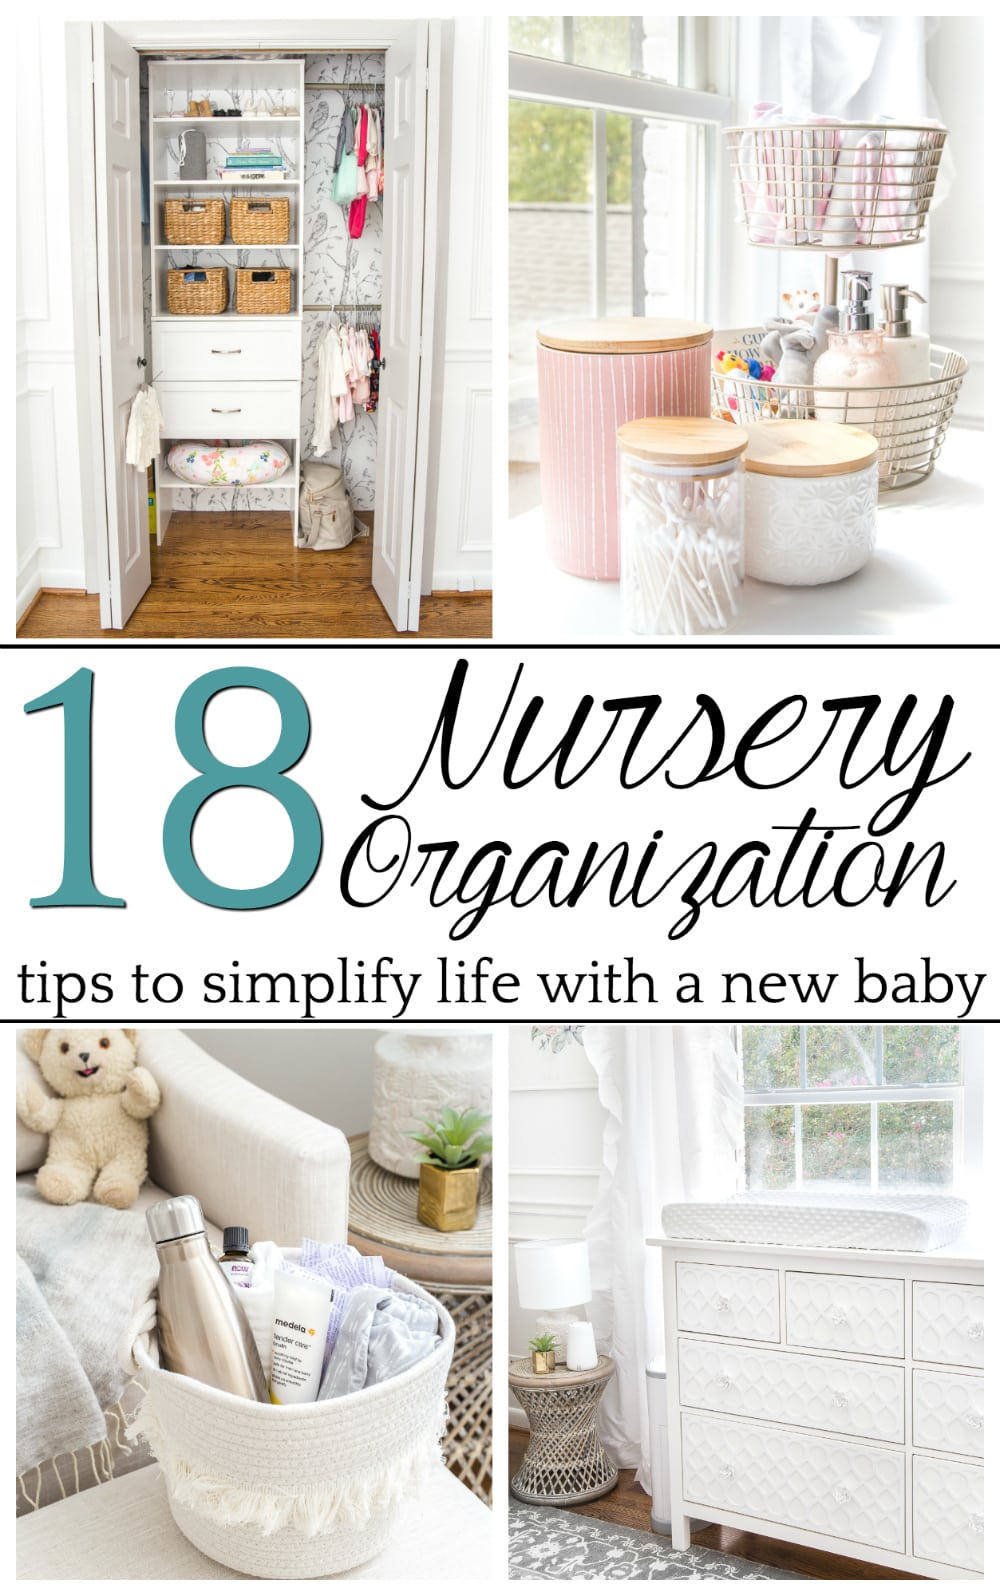 Nursery organization strategies to keep feeding, clothing, and diapering essentials easy to navigate and make baby care less stressful. #nurseryorganization